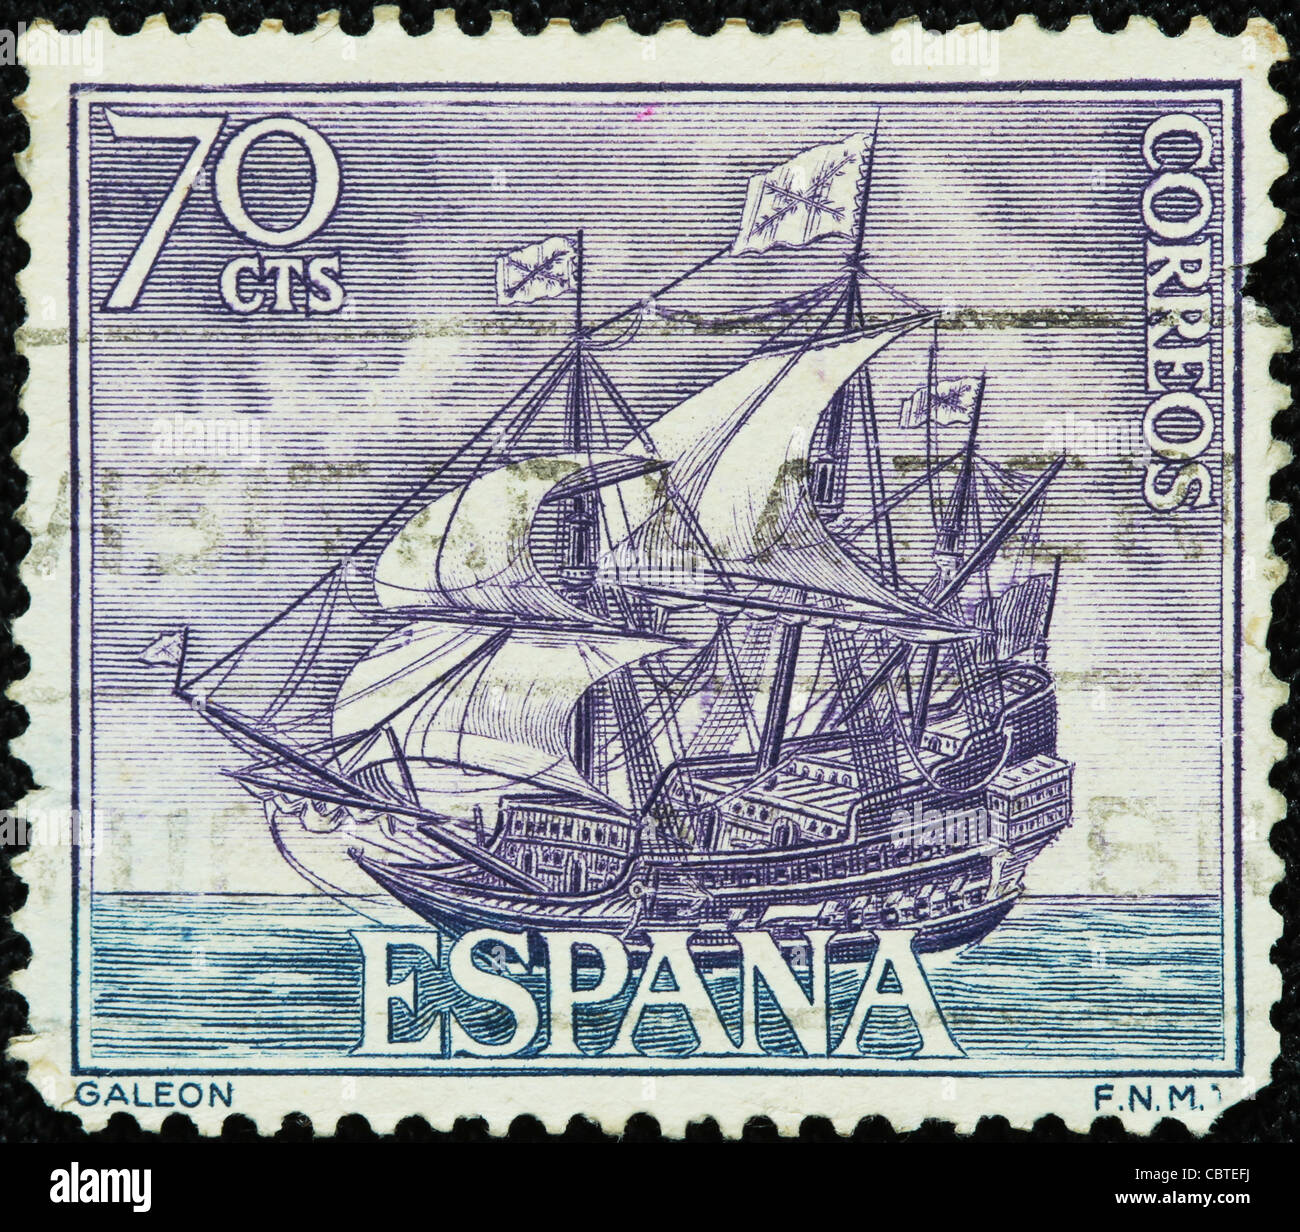 SPAIN A Spanish Galleon On Used And Canceled Postage Stamp Printed In Spain